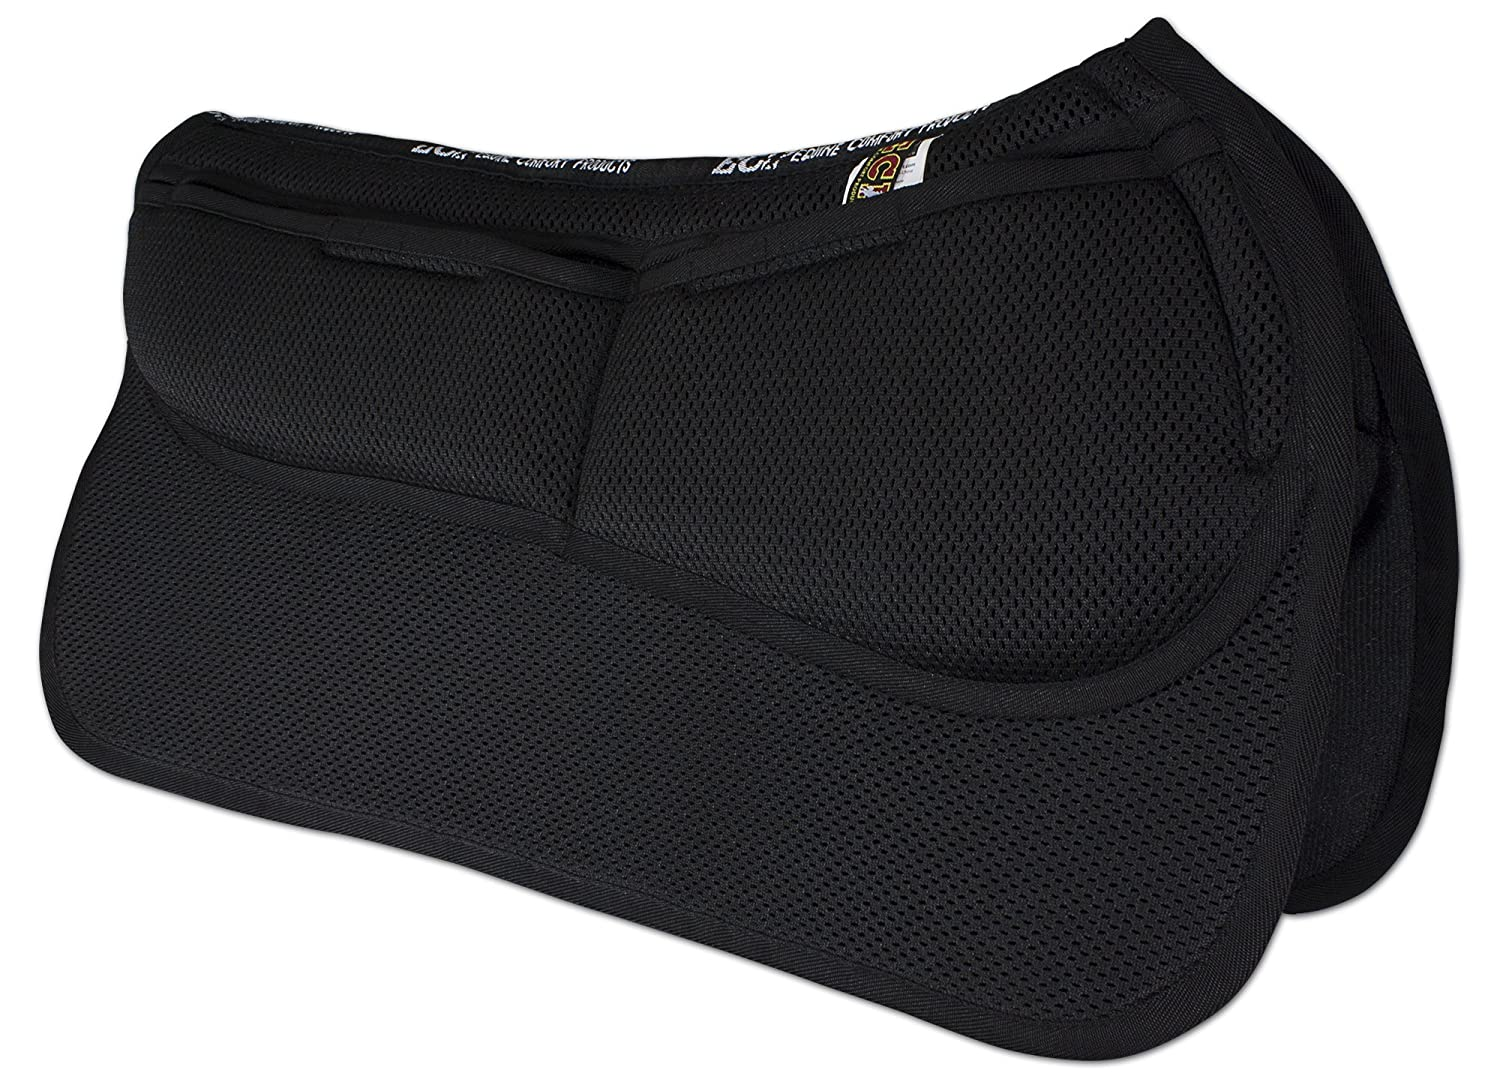 ECP 3D Mesh Western Saddle Pad All Purpose Diamond Quilted Cotton Therapeutic Contoured Correction Support Memory Foam Pockets for Riding